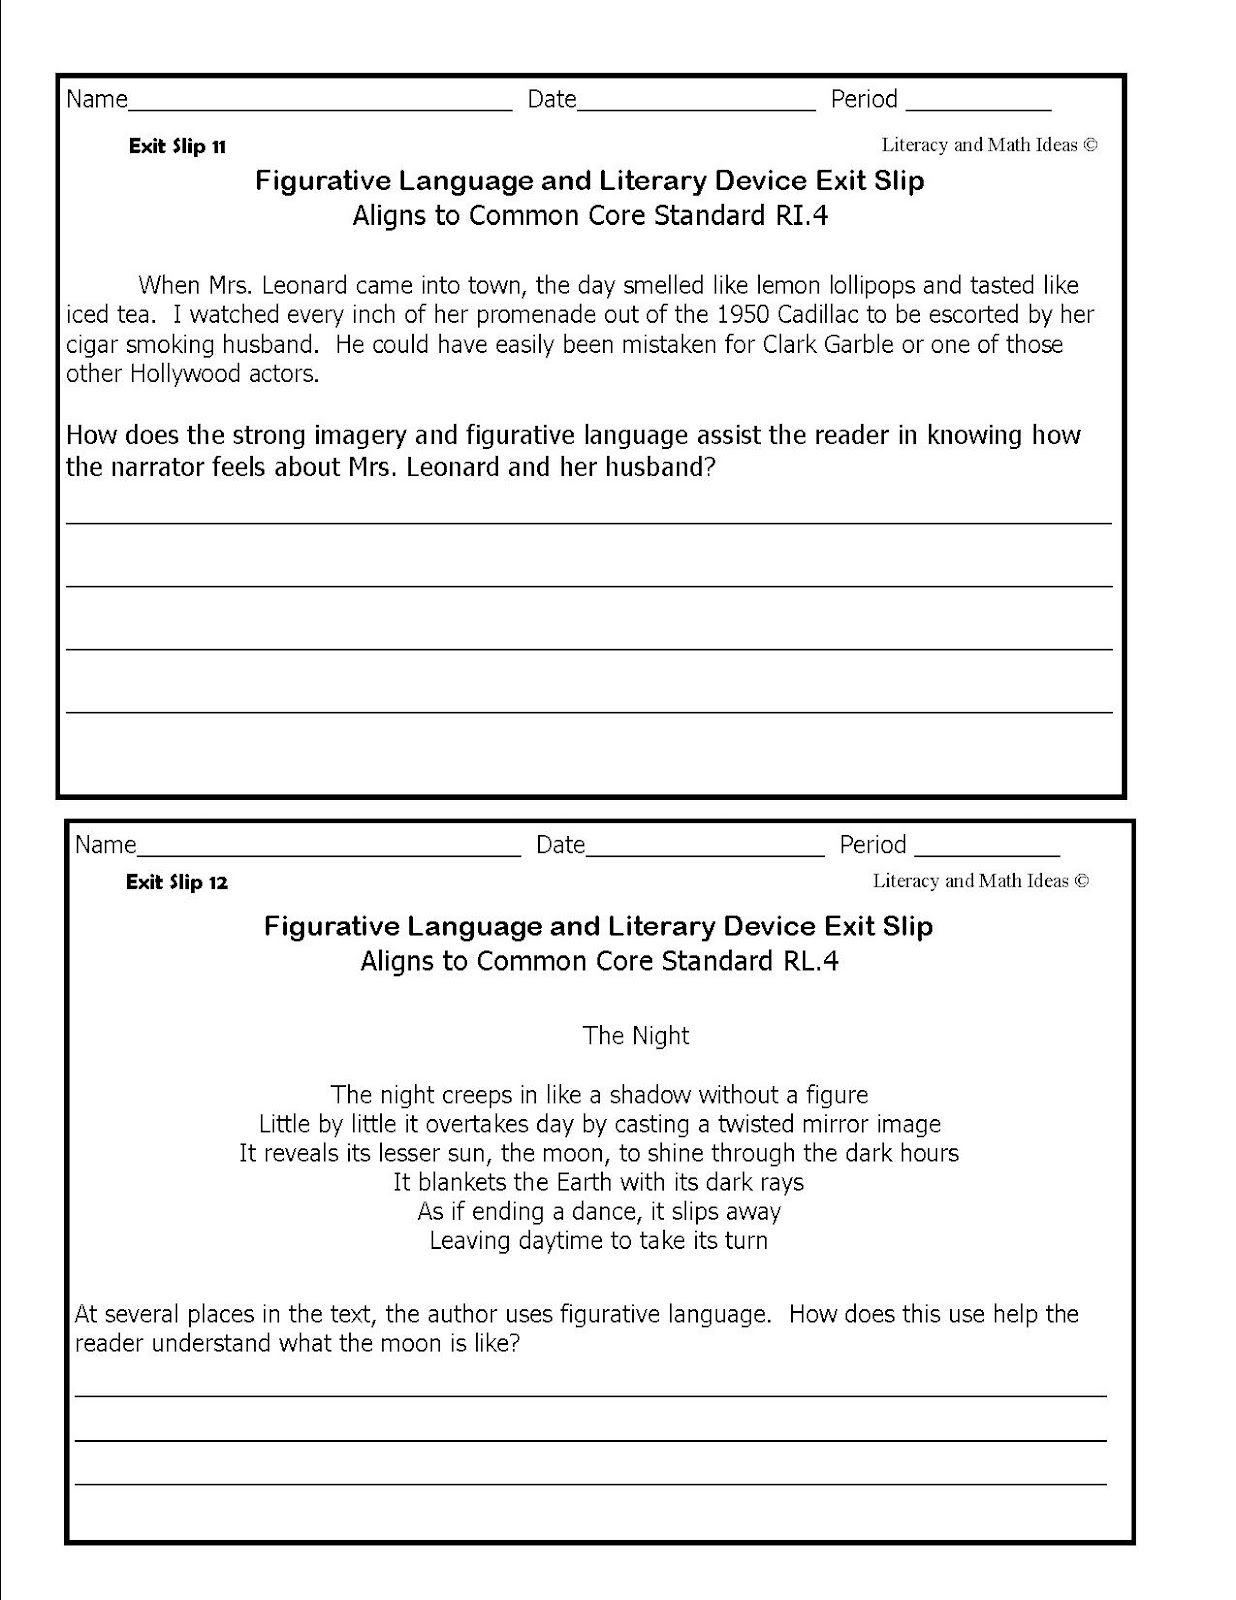 Literacy Amp Math Ideas Figurative Language Exit Slips